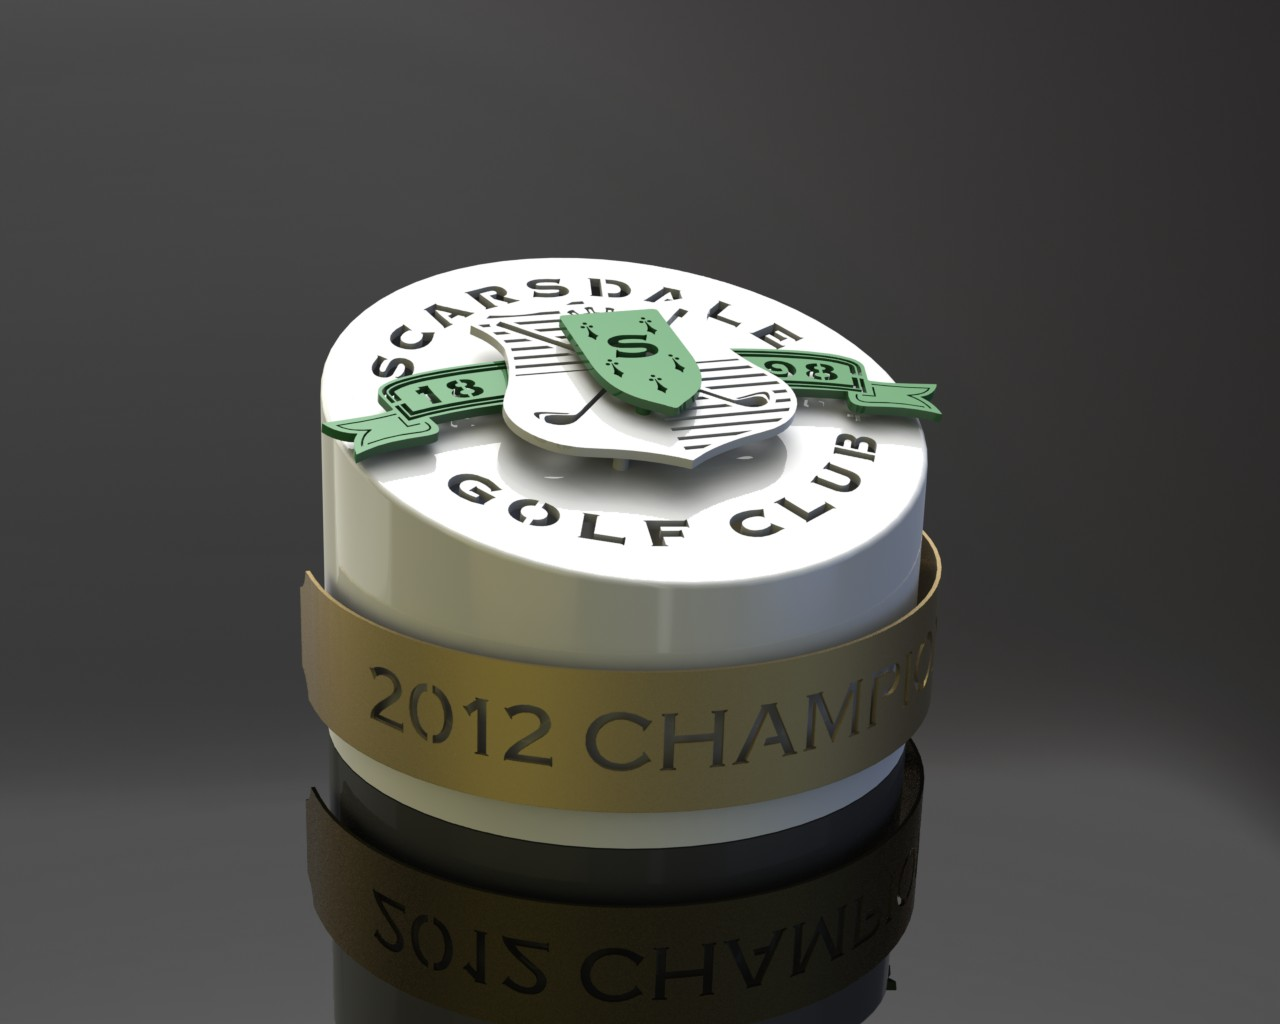 Scarsdale Golf Tournament Trophy